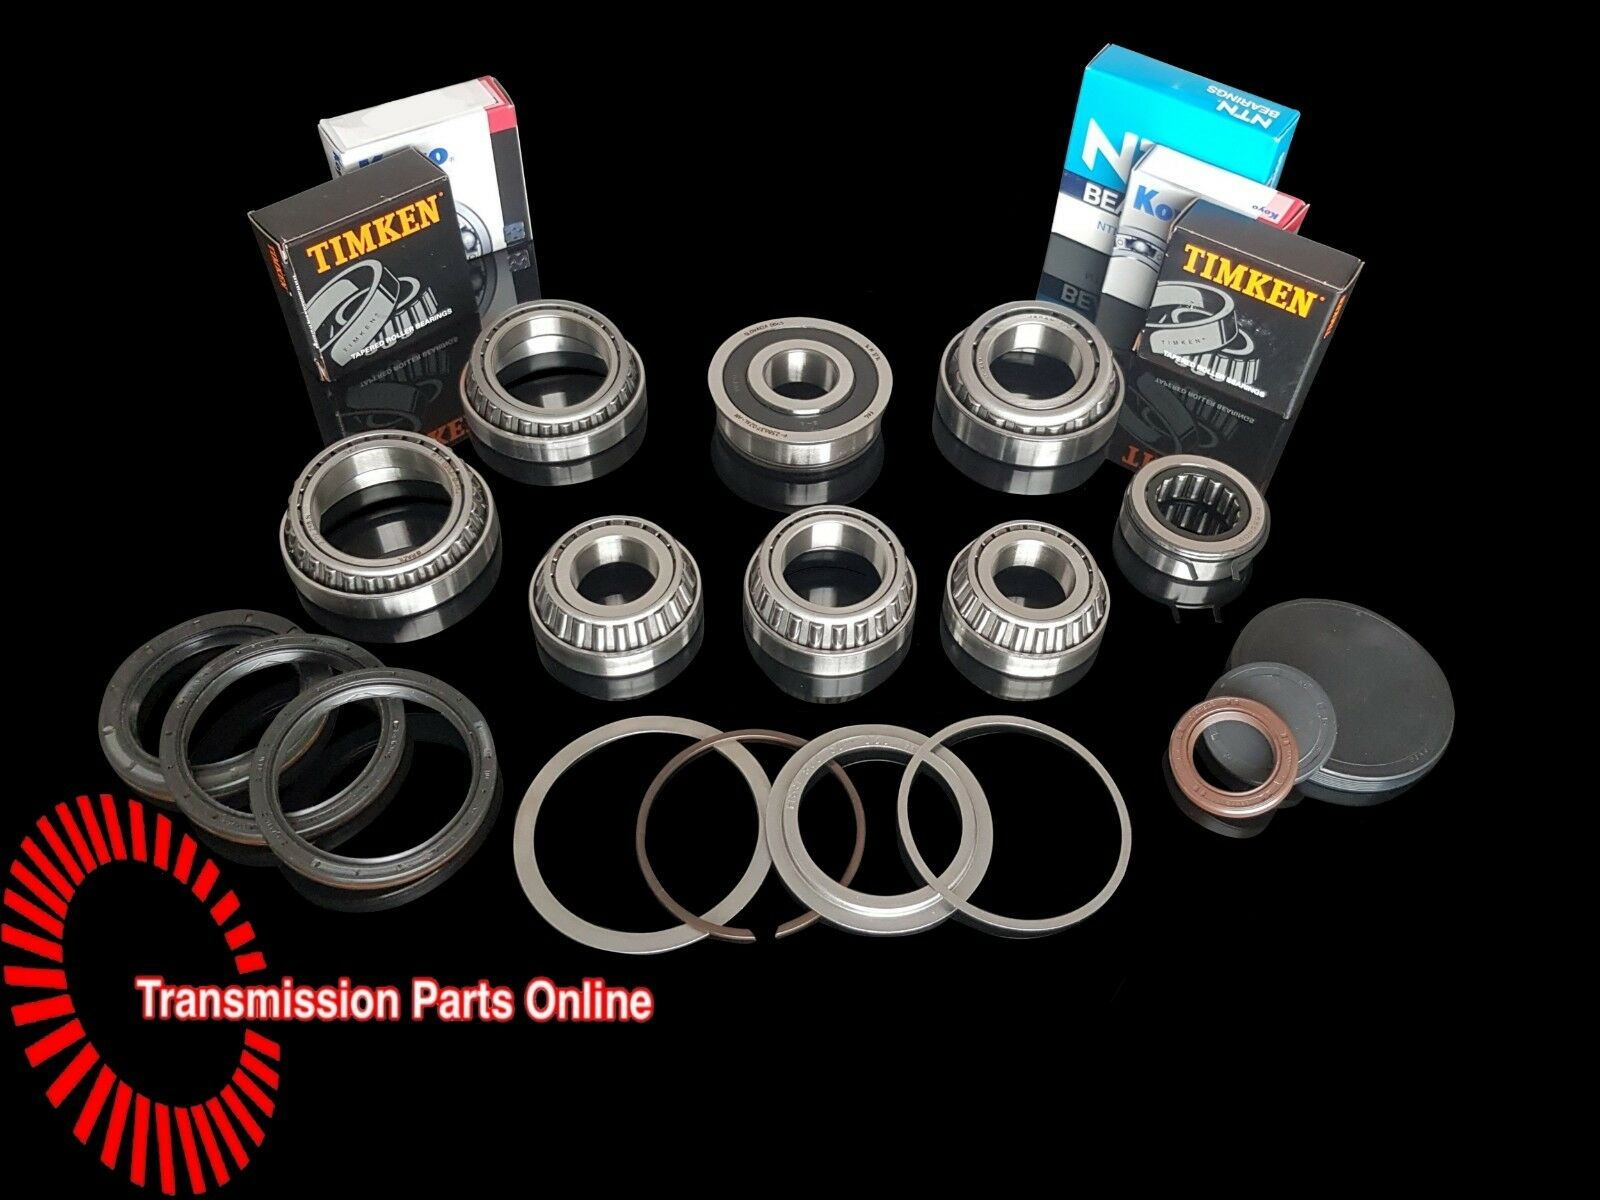 Details about VW Golf 2 0 Petrol / TDi Early 02Q 6 Speed Gearbox Bearing &  Oil Seal Repair Kit